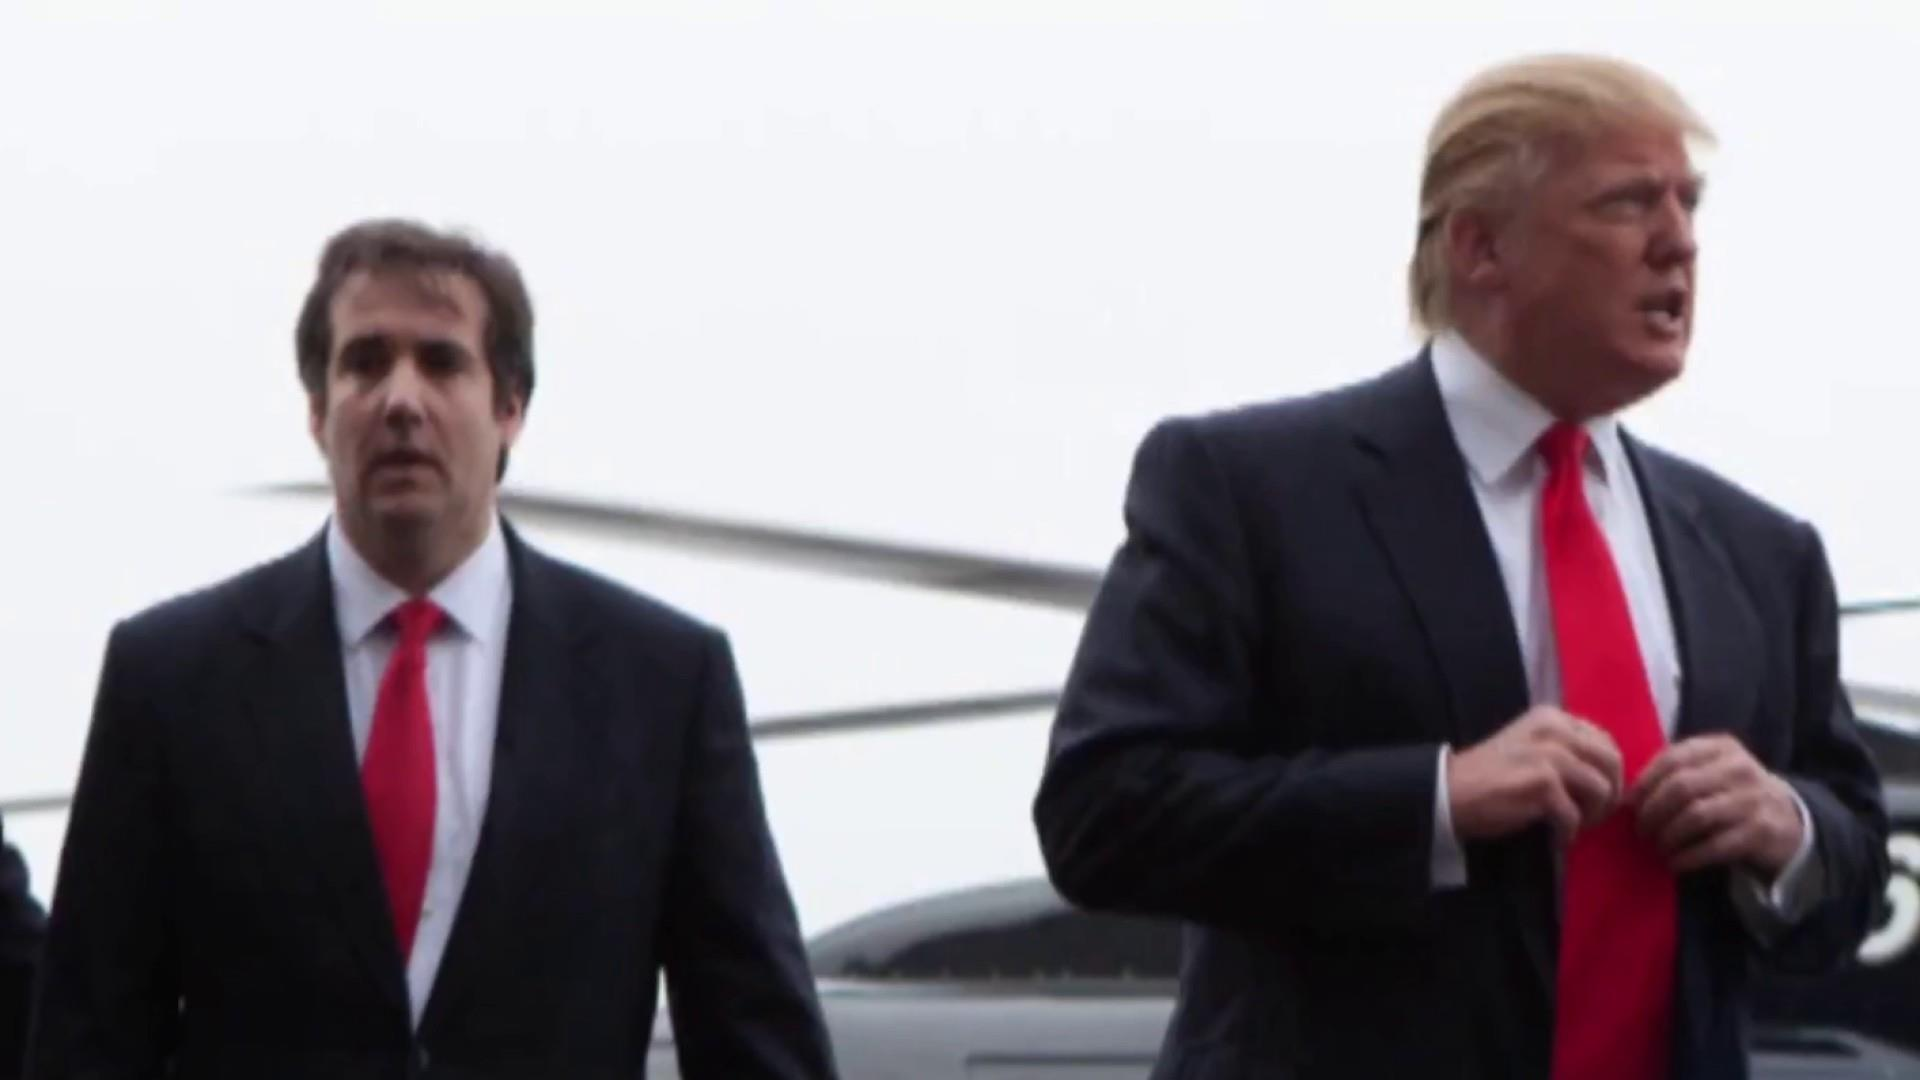 Trump denies he ordered Cohen to break the law